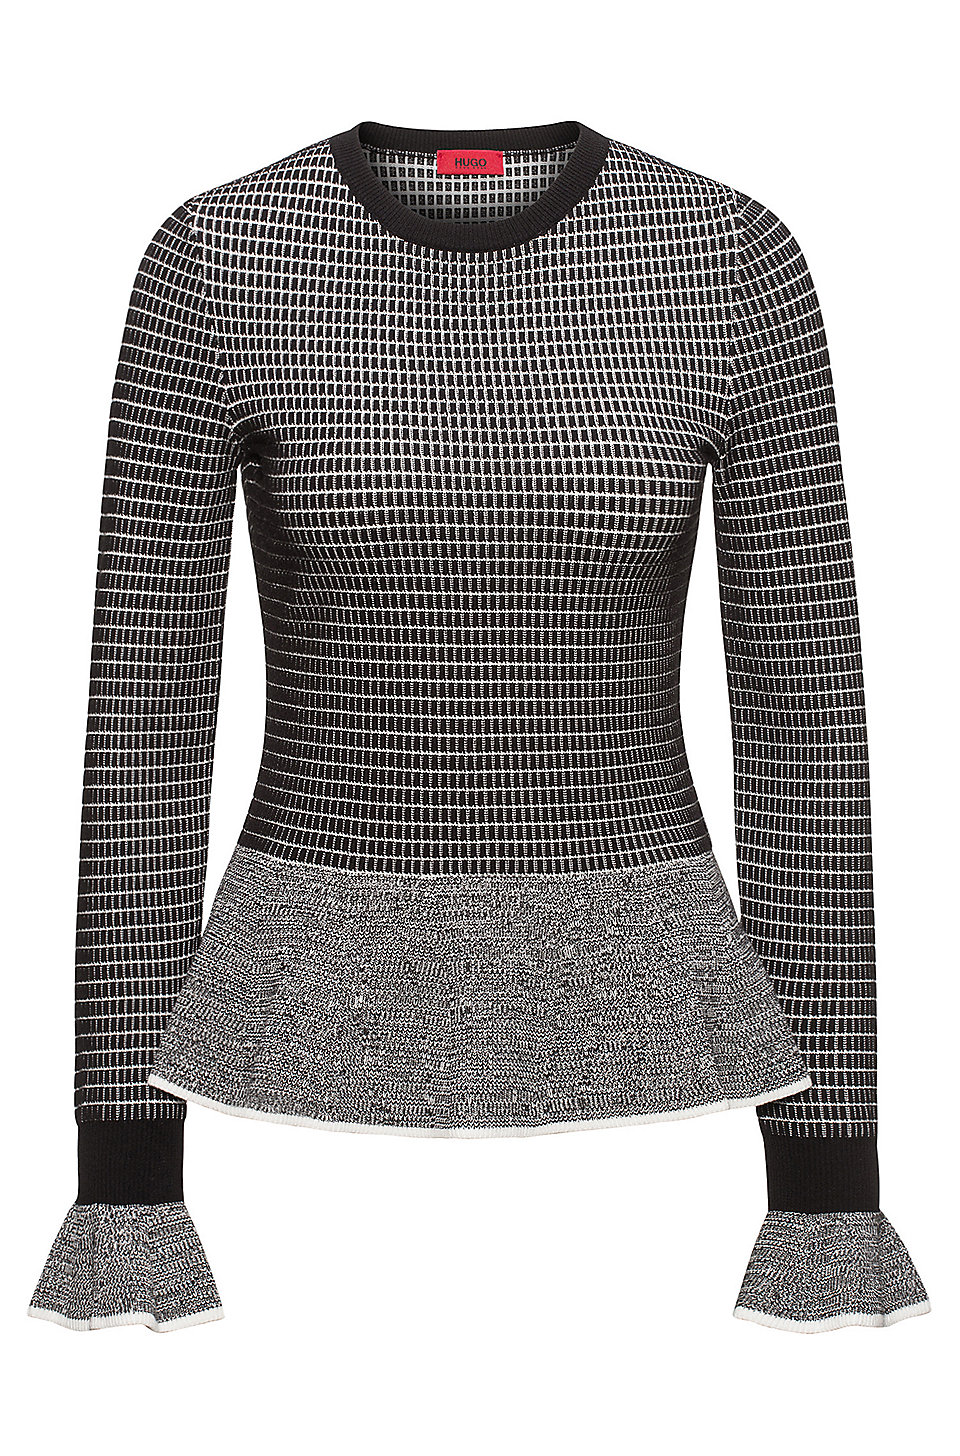 HUGO BOSS® Women's Sweaters & Knits